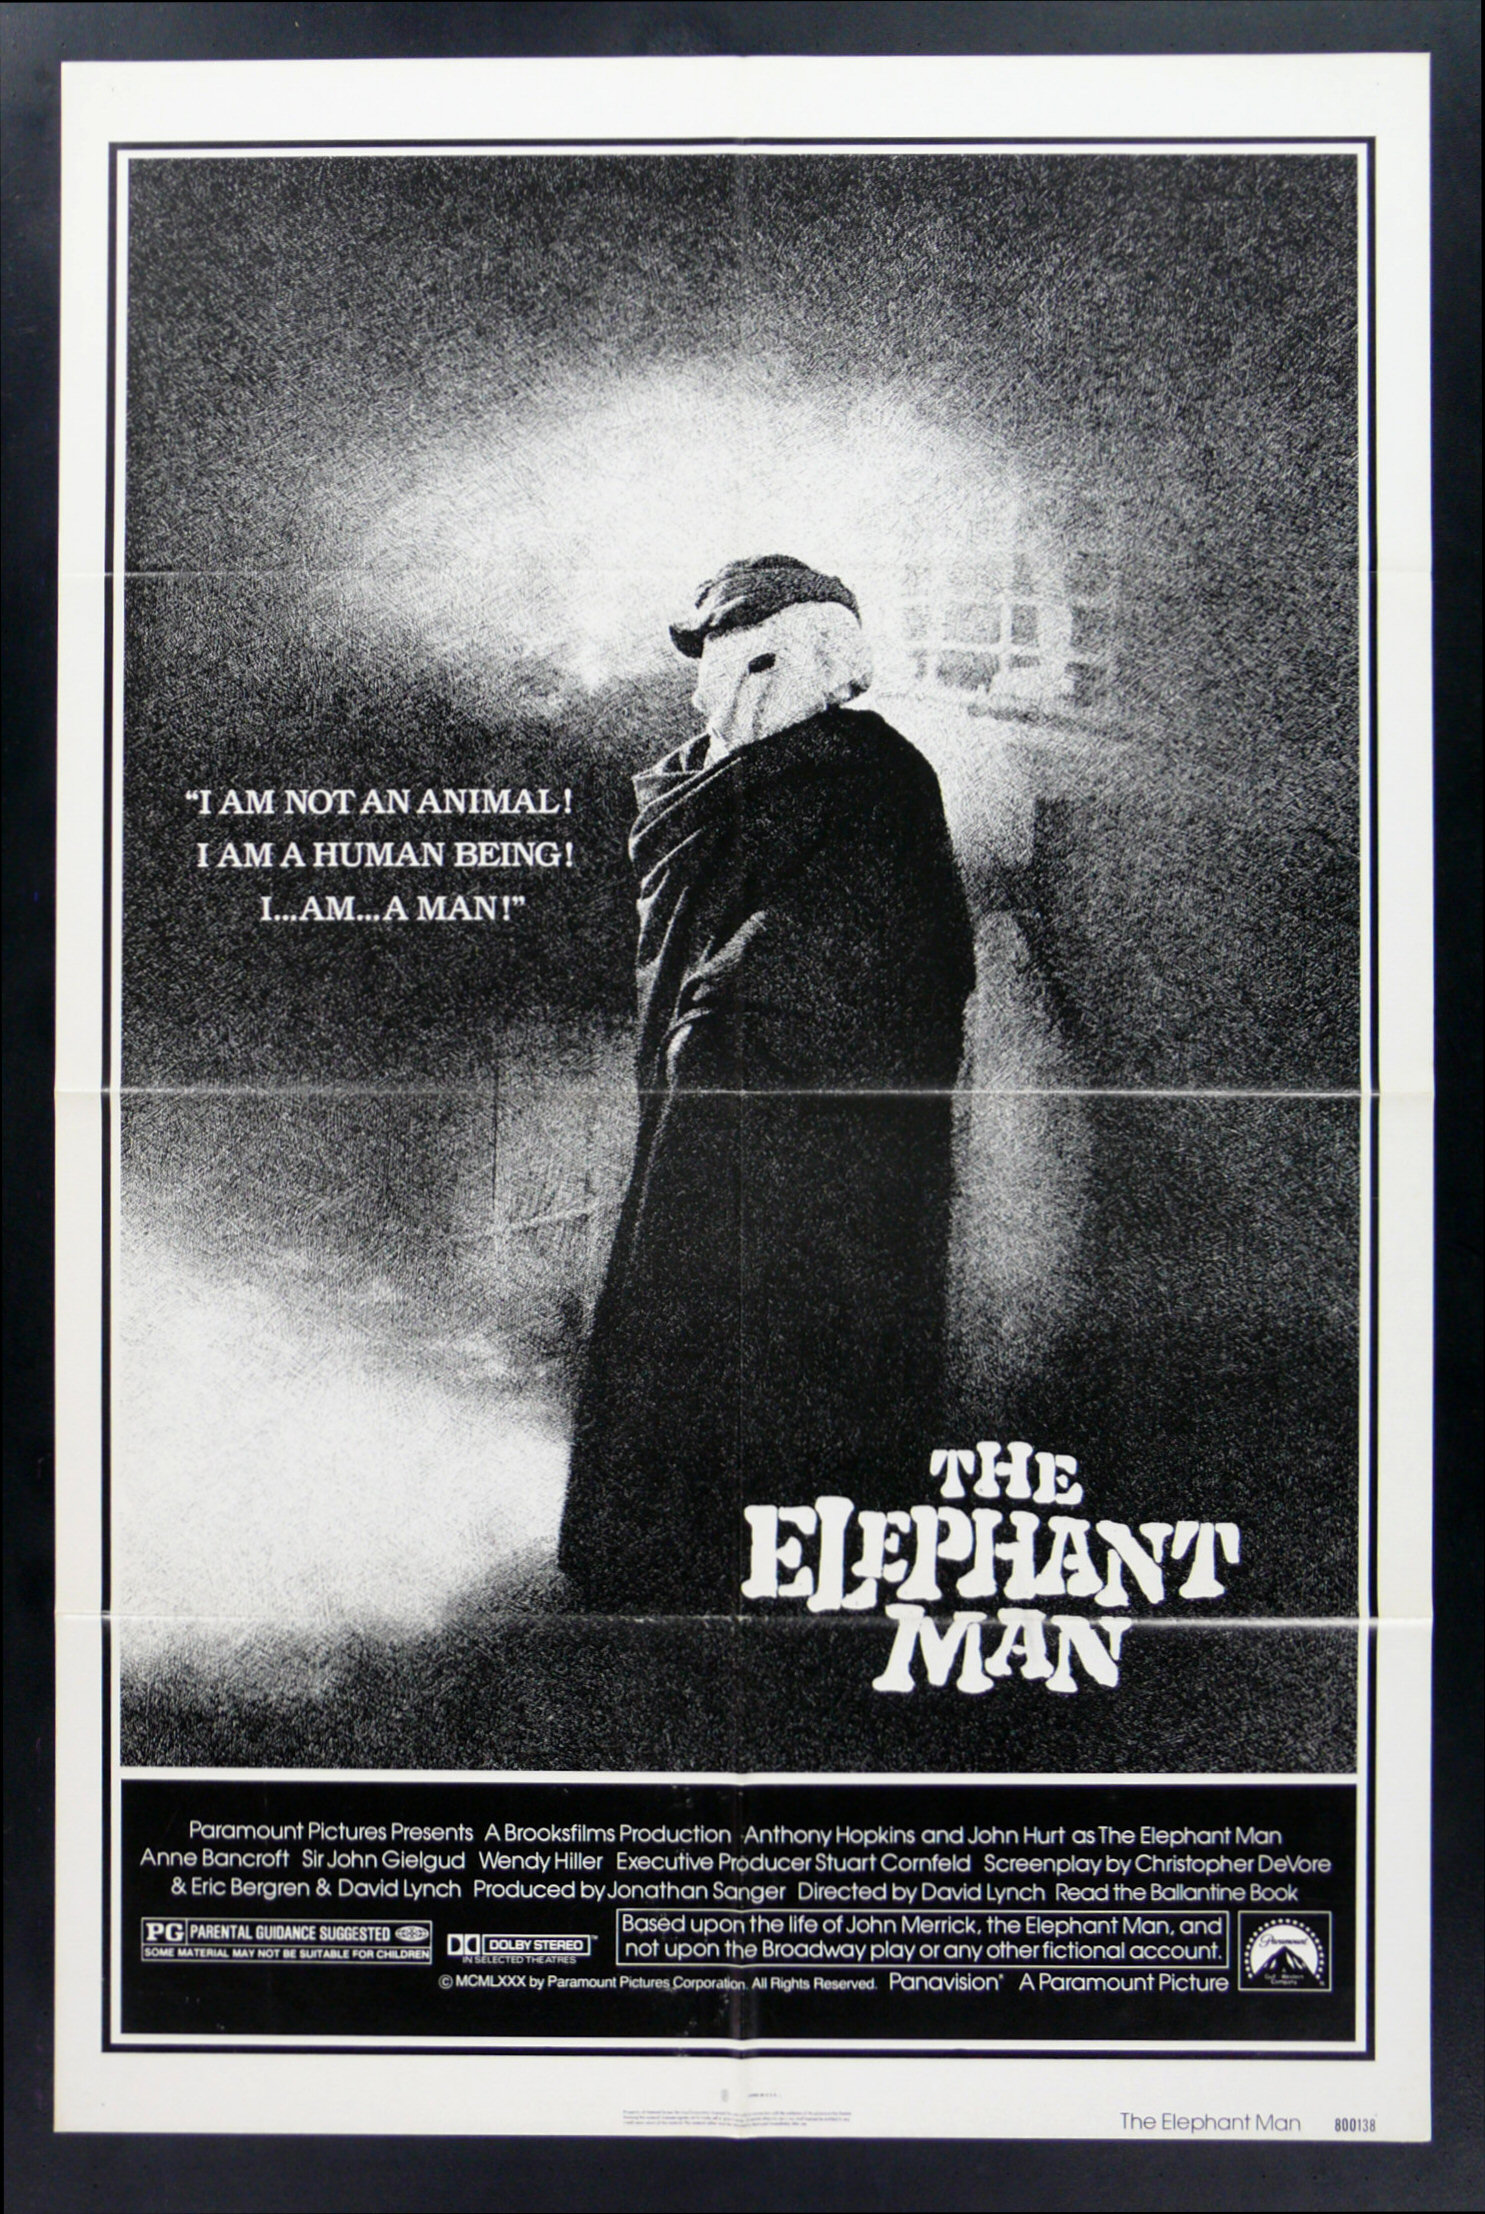 THE ELEPHANT MAN * 1SH ORIG MOVIE POSTER 1980 | eBay